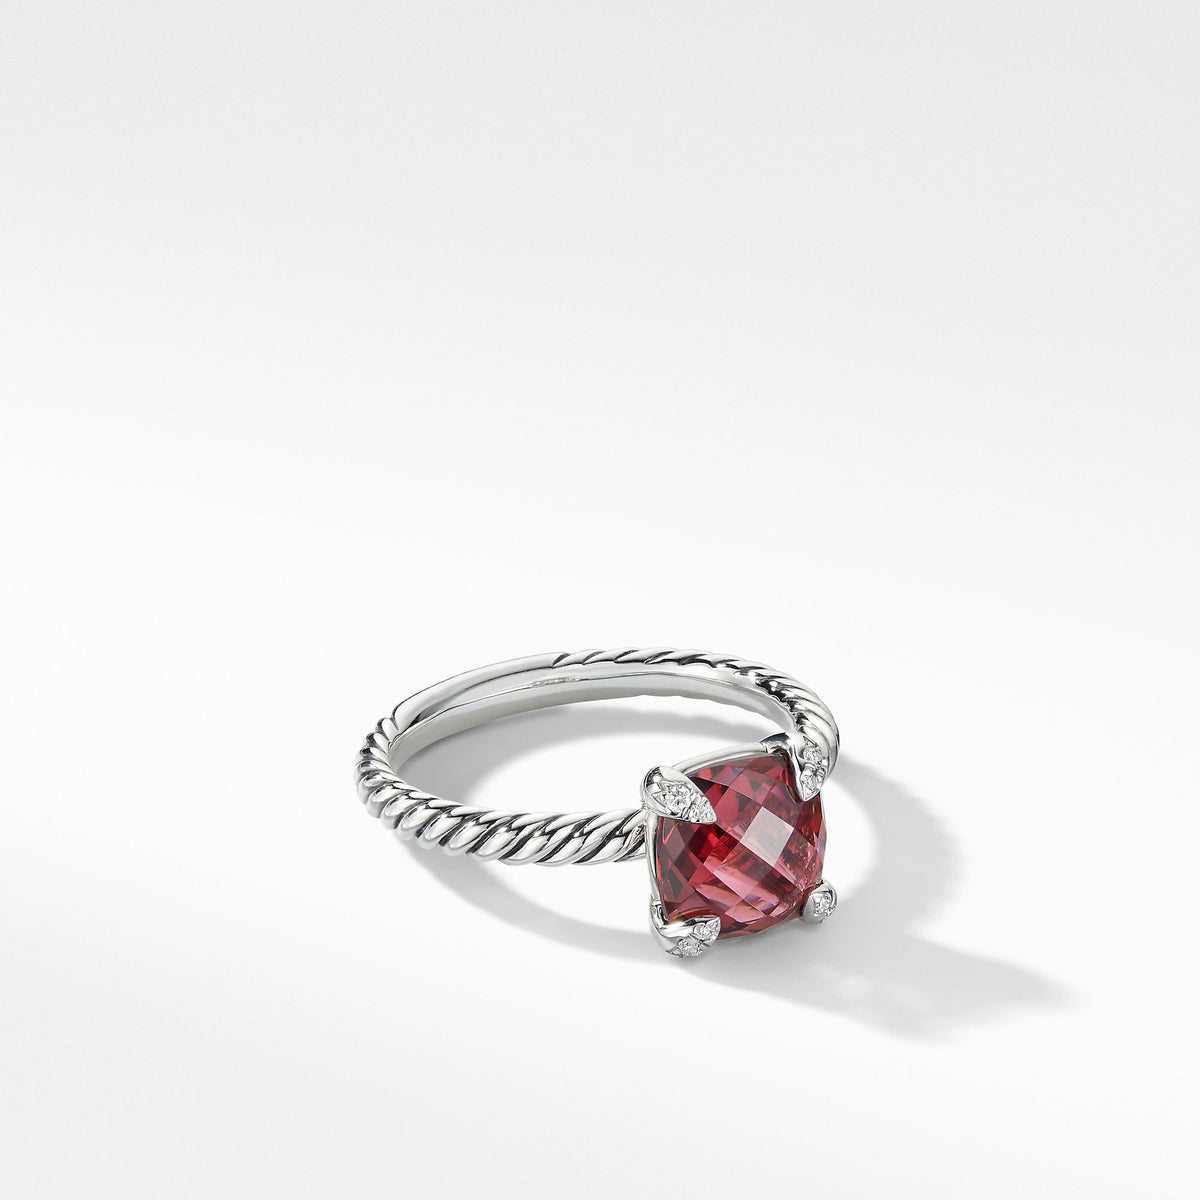 Chatelaine Ring with Rhodalite Garnet and Diamonds